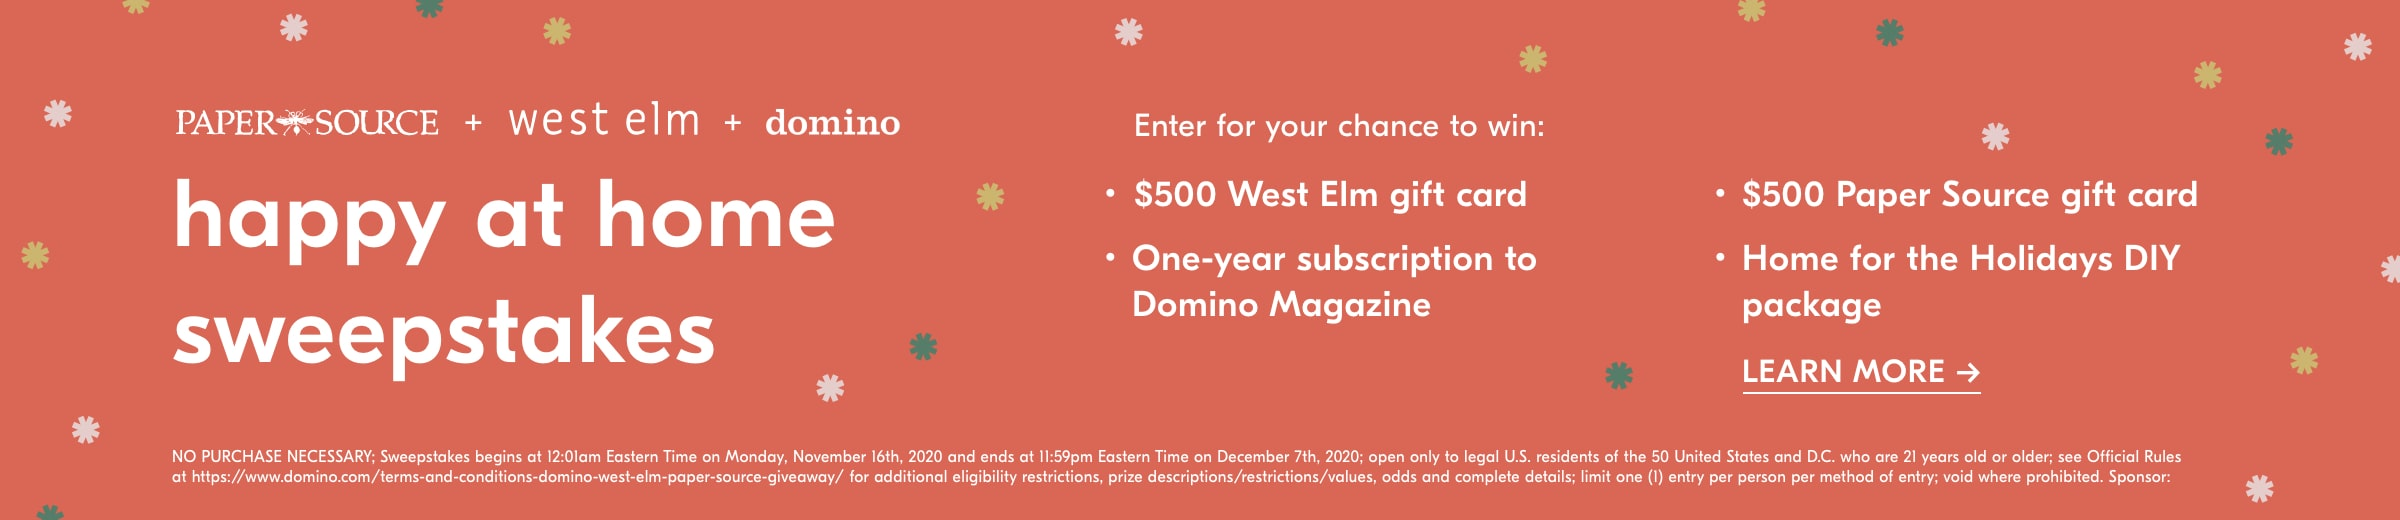 happy at home sweepstakes